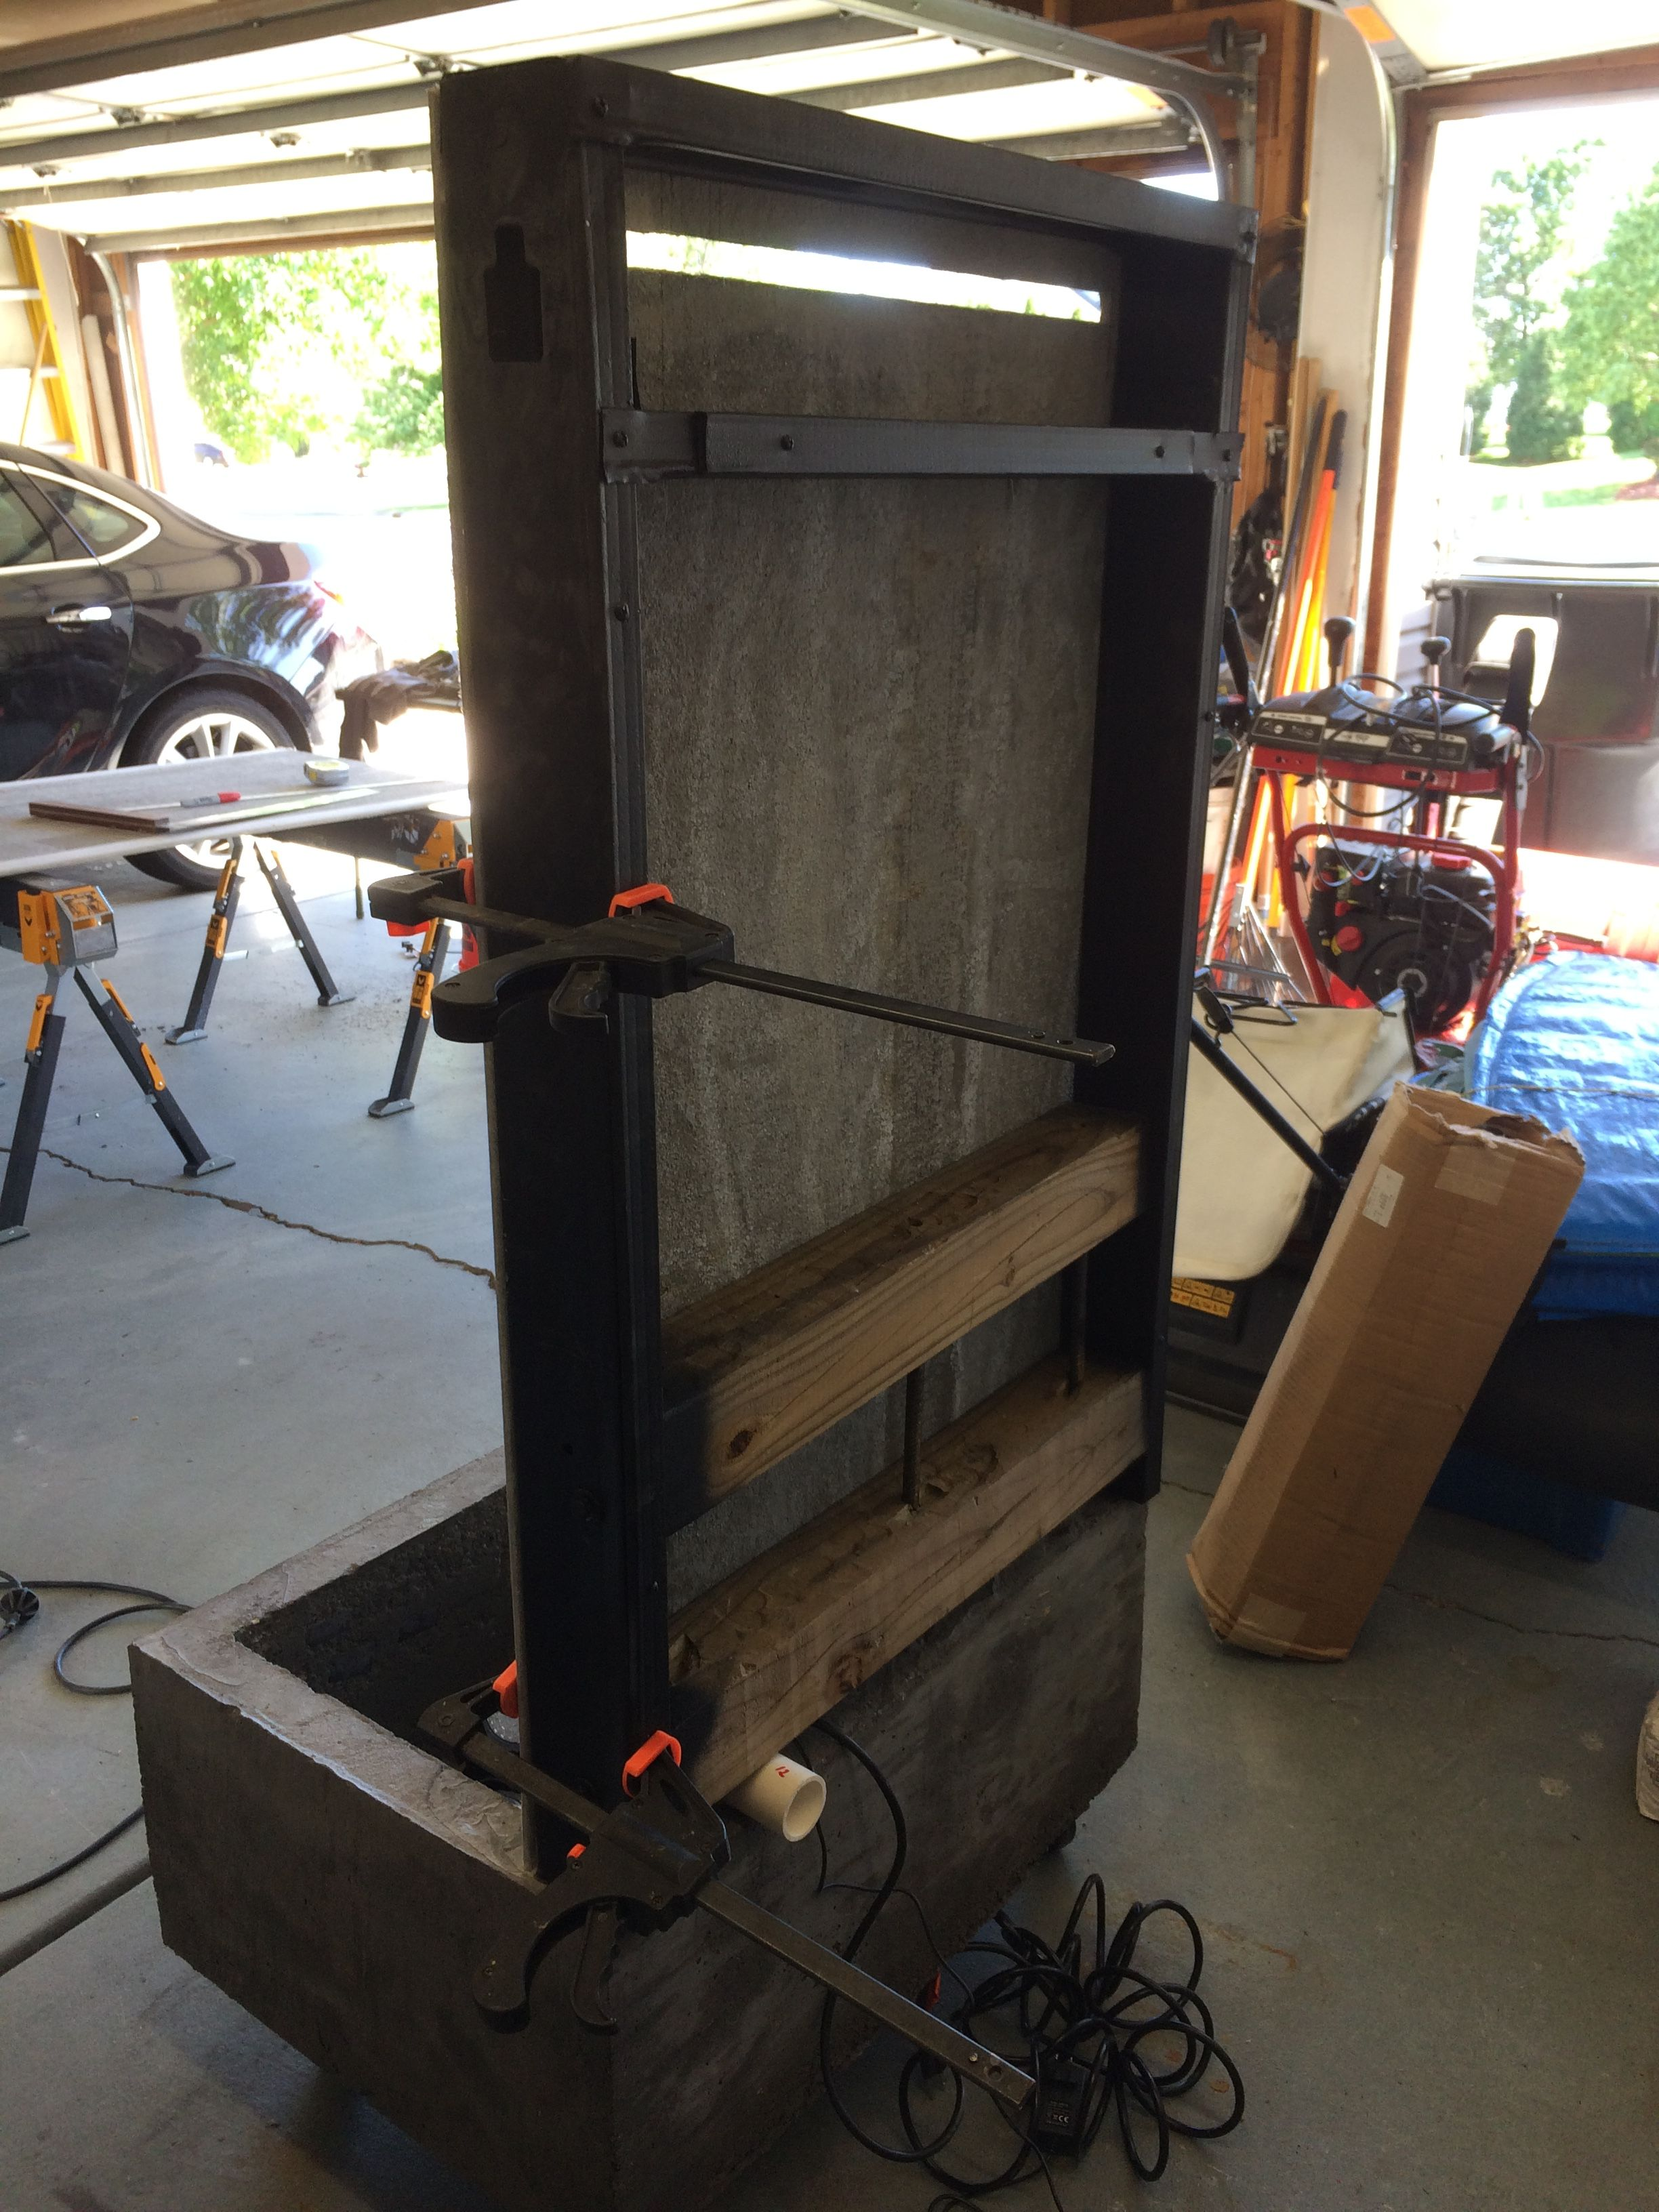 Backside view while installing the backer board custom